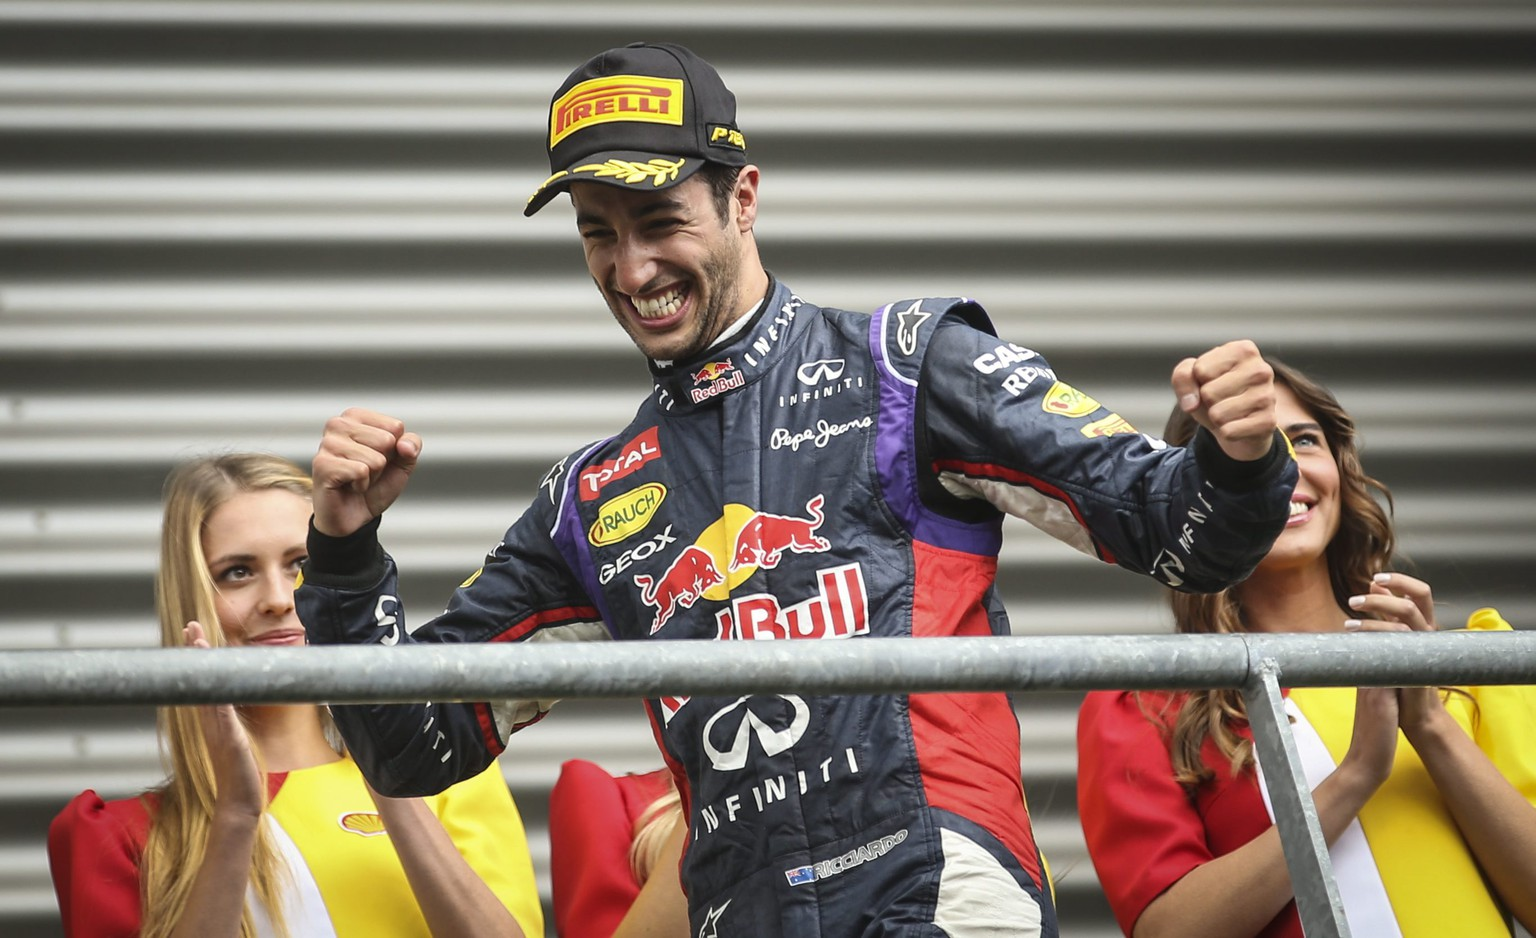 epa04366082 Australian Formula One driver Daniel Ricciardo of Red Bull Racing celebrates on the podium after winning the 2014 Belgium Formula One Grand Prix, at the Spa-Francorchamps race track near Francorchamps, Belgium, 24 August 2014.  EPA/OLIVIER HOSLET